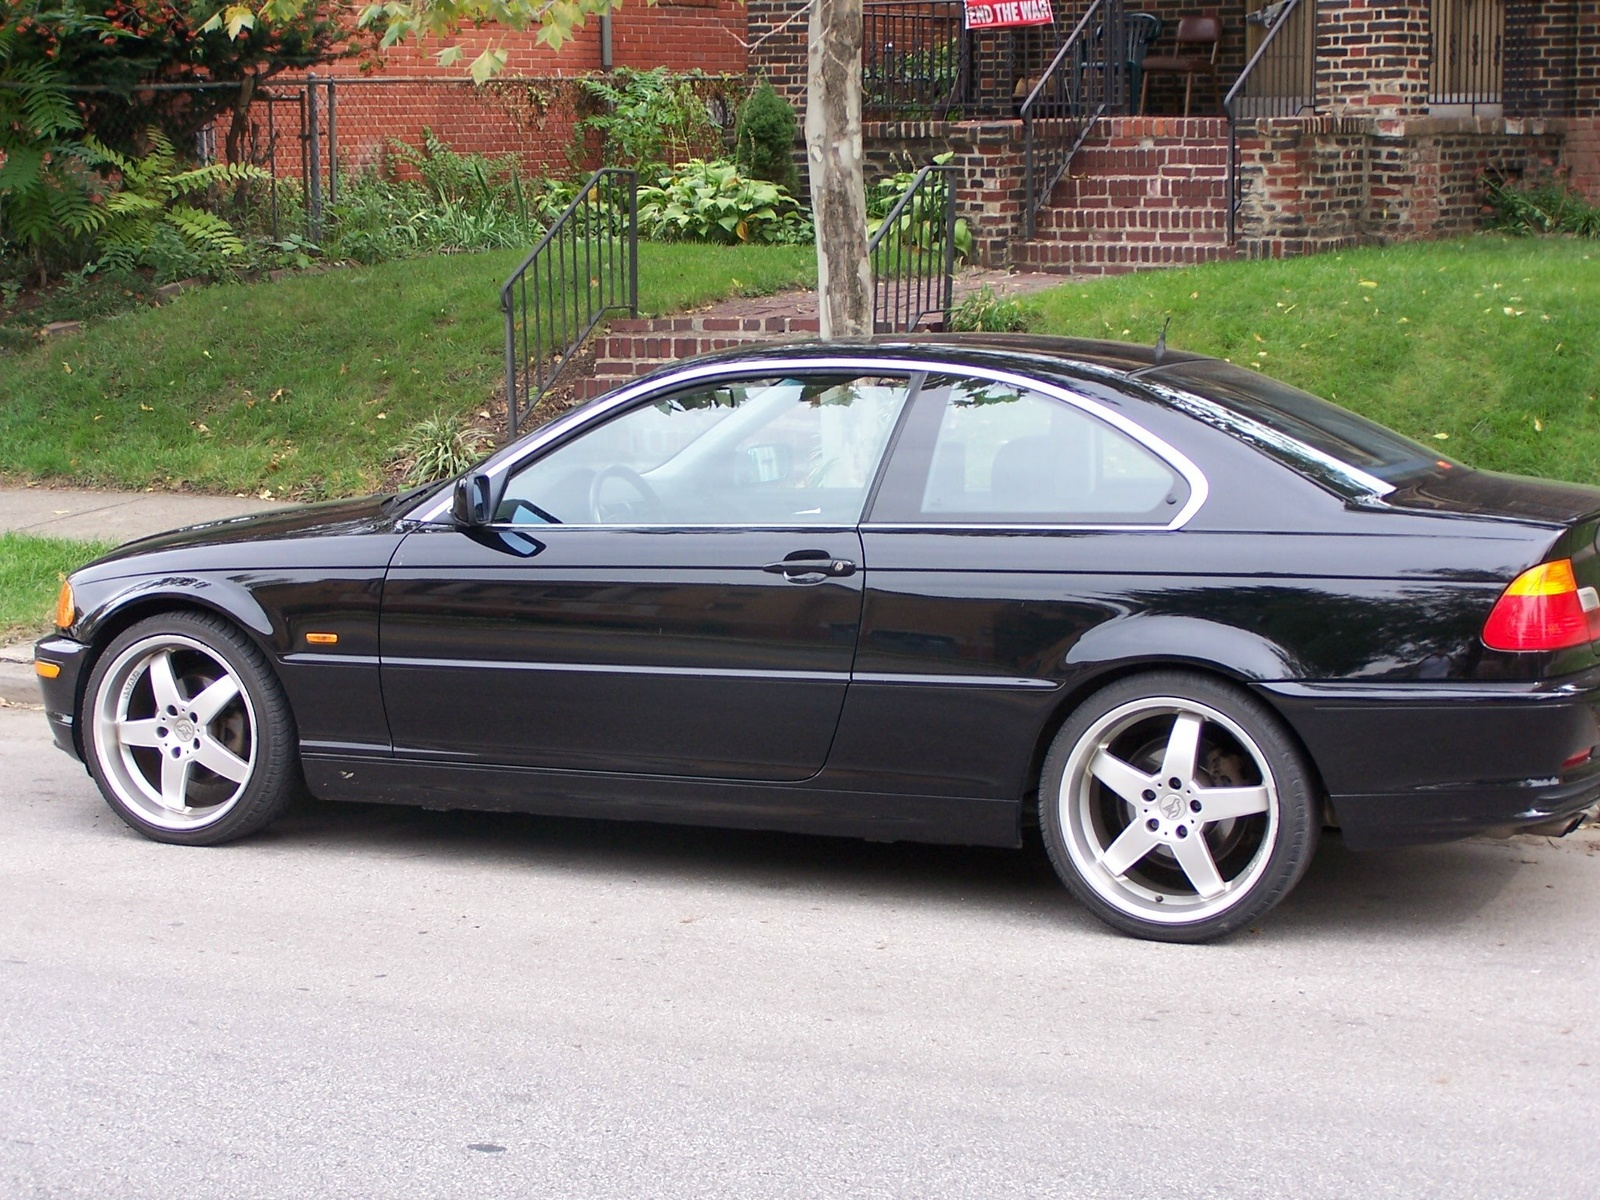 Bmw 325 1989 Review Amazing Pictures And Images Look